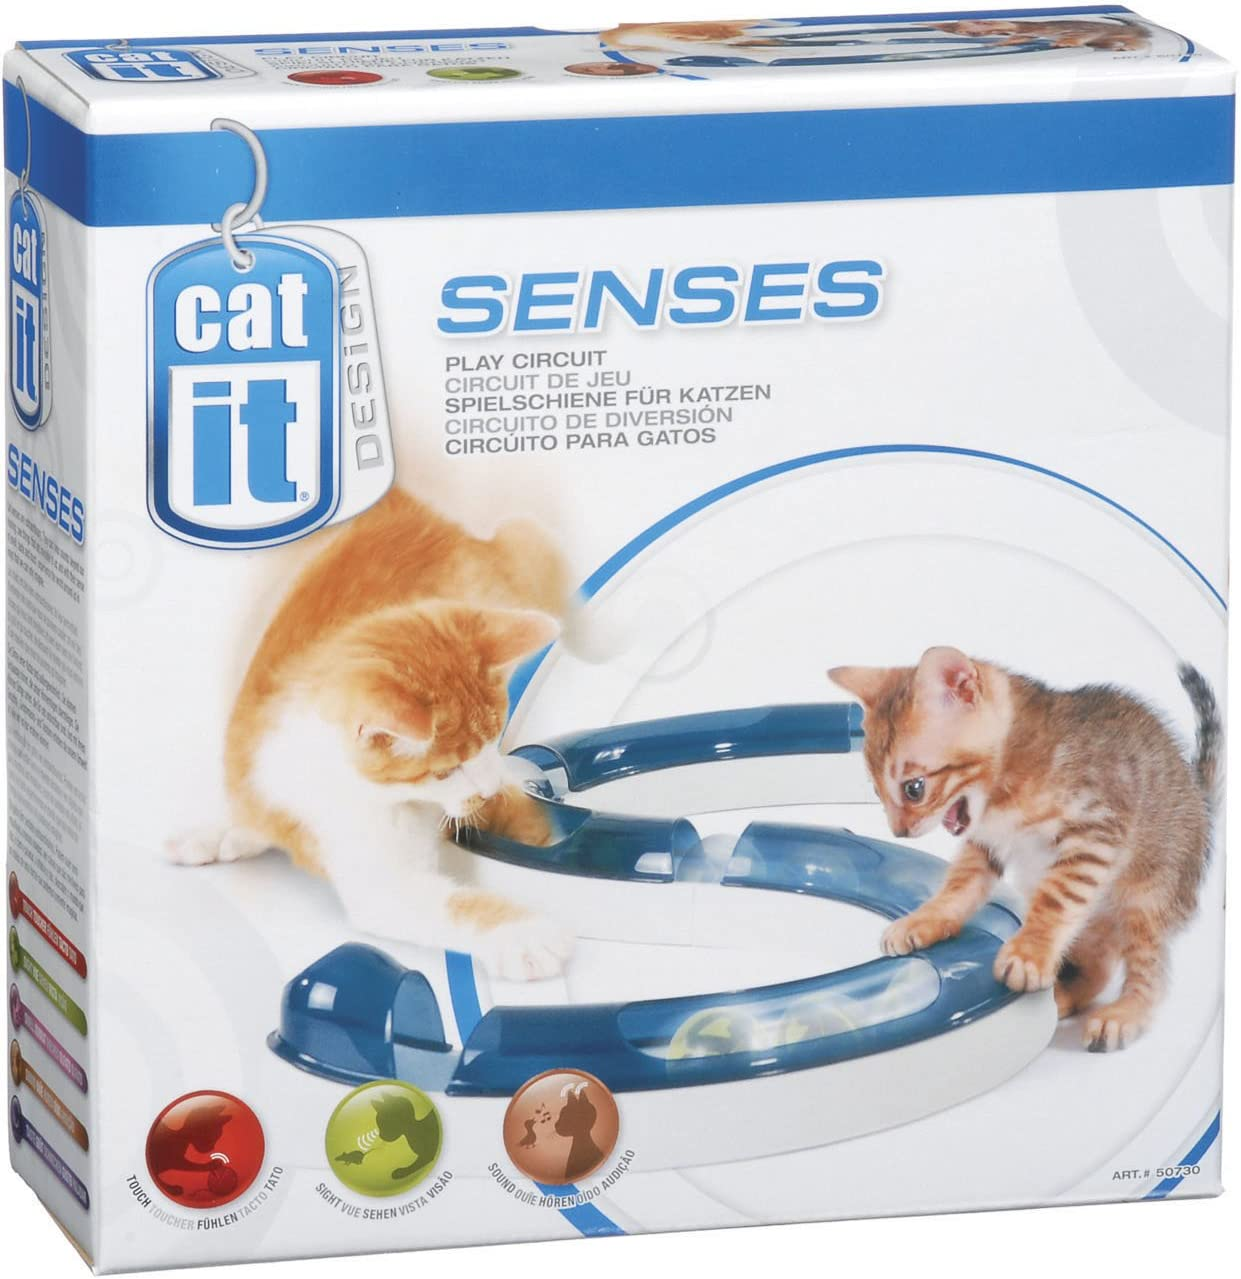 Catit Design Senses Play Circuit, Original